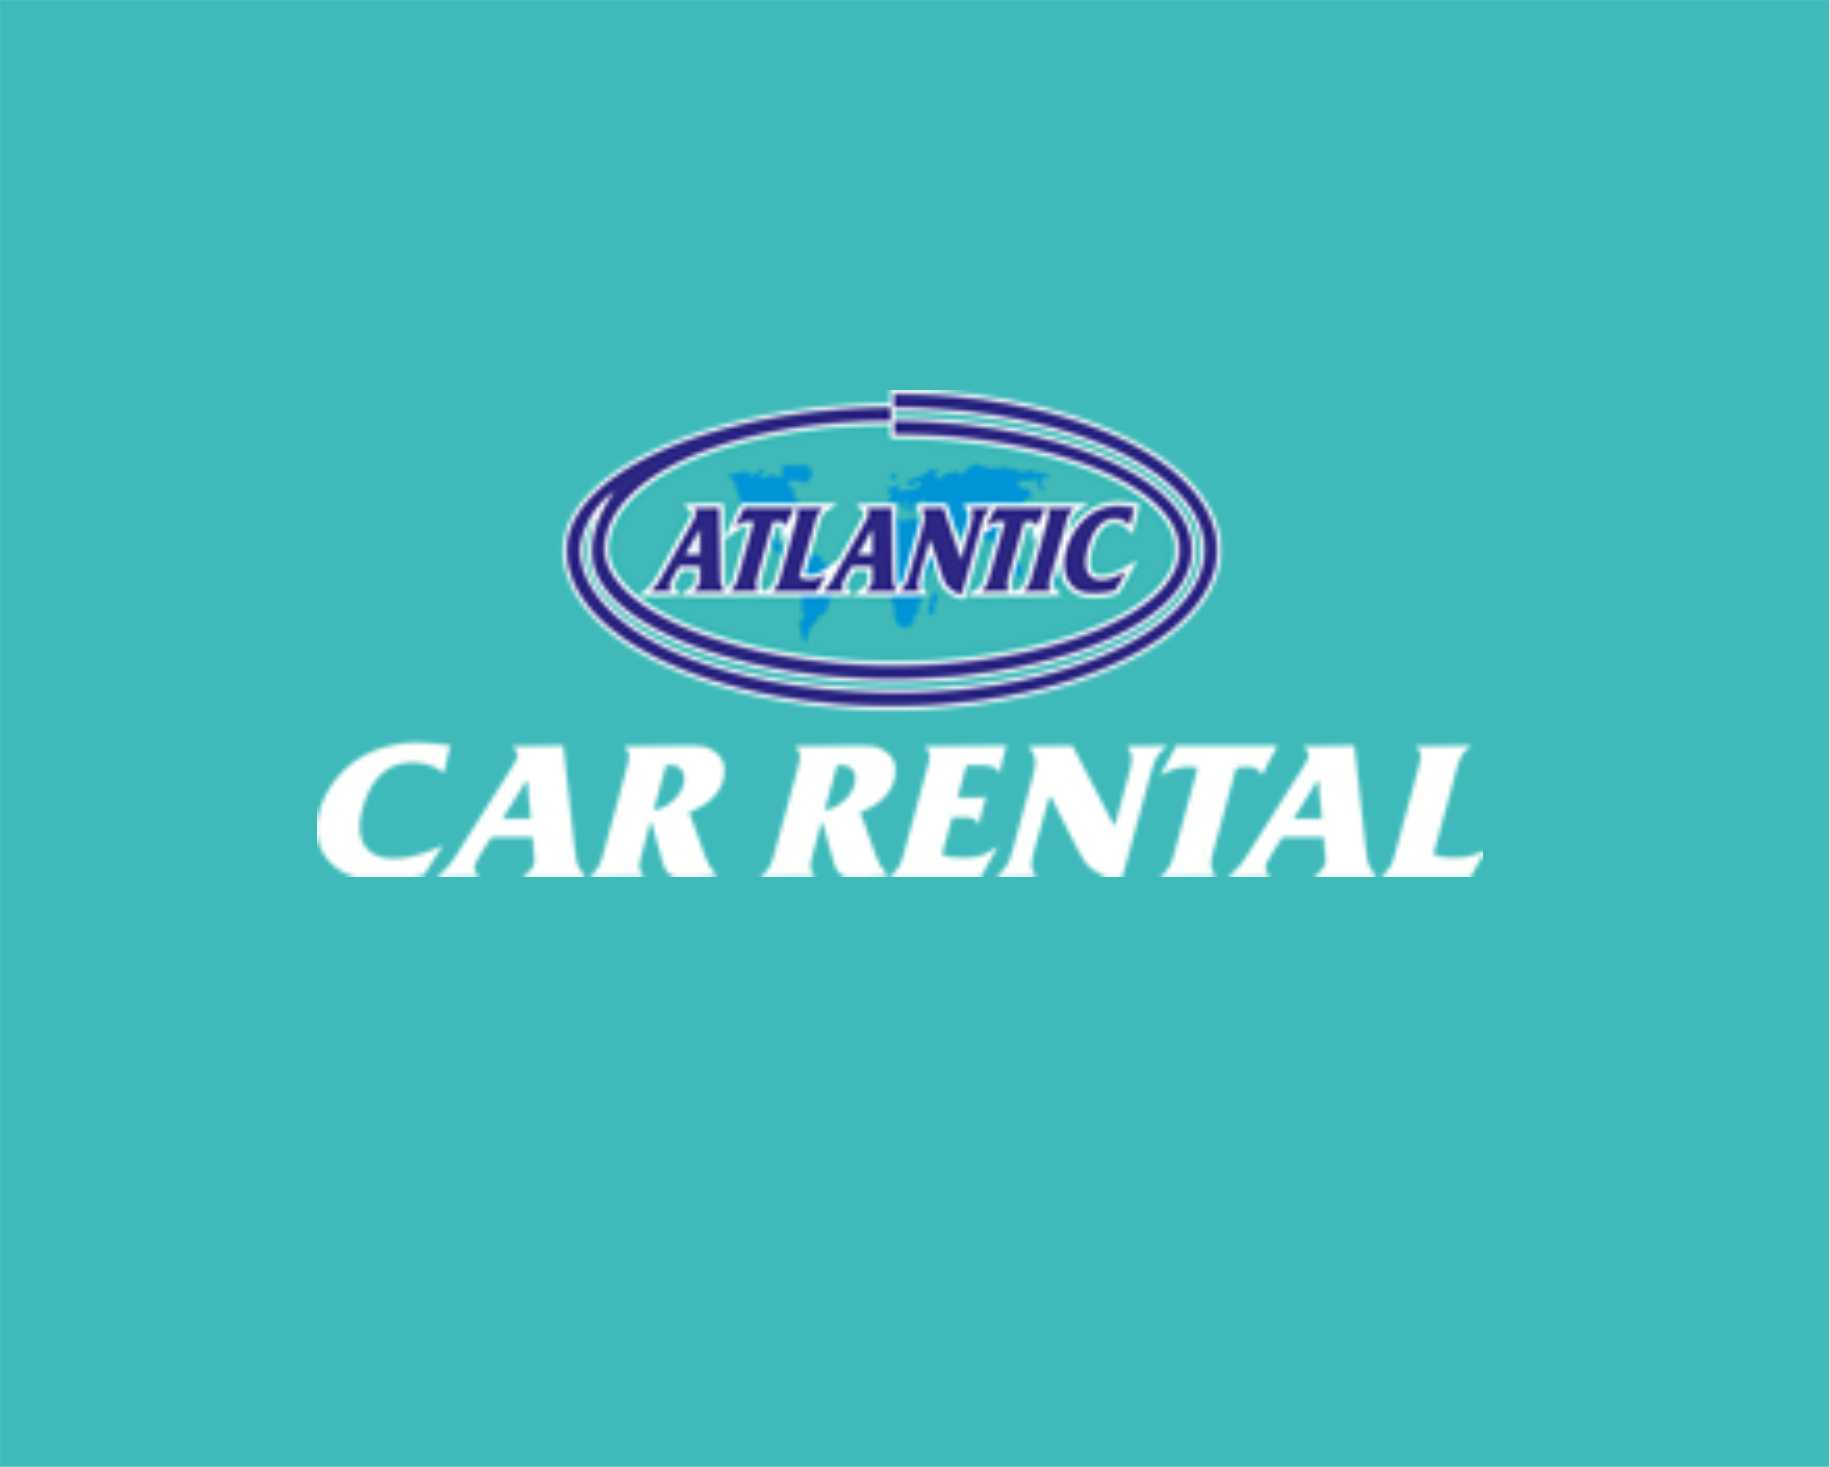 köycegiz rent a car firmaları %>